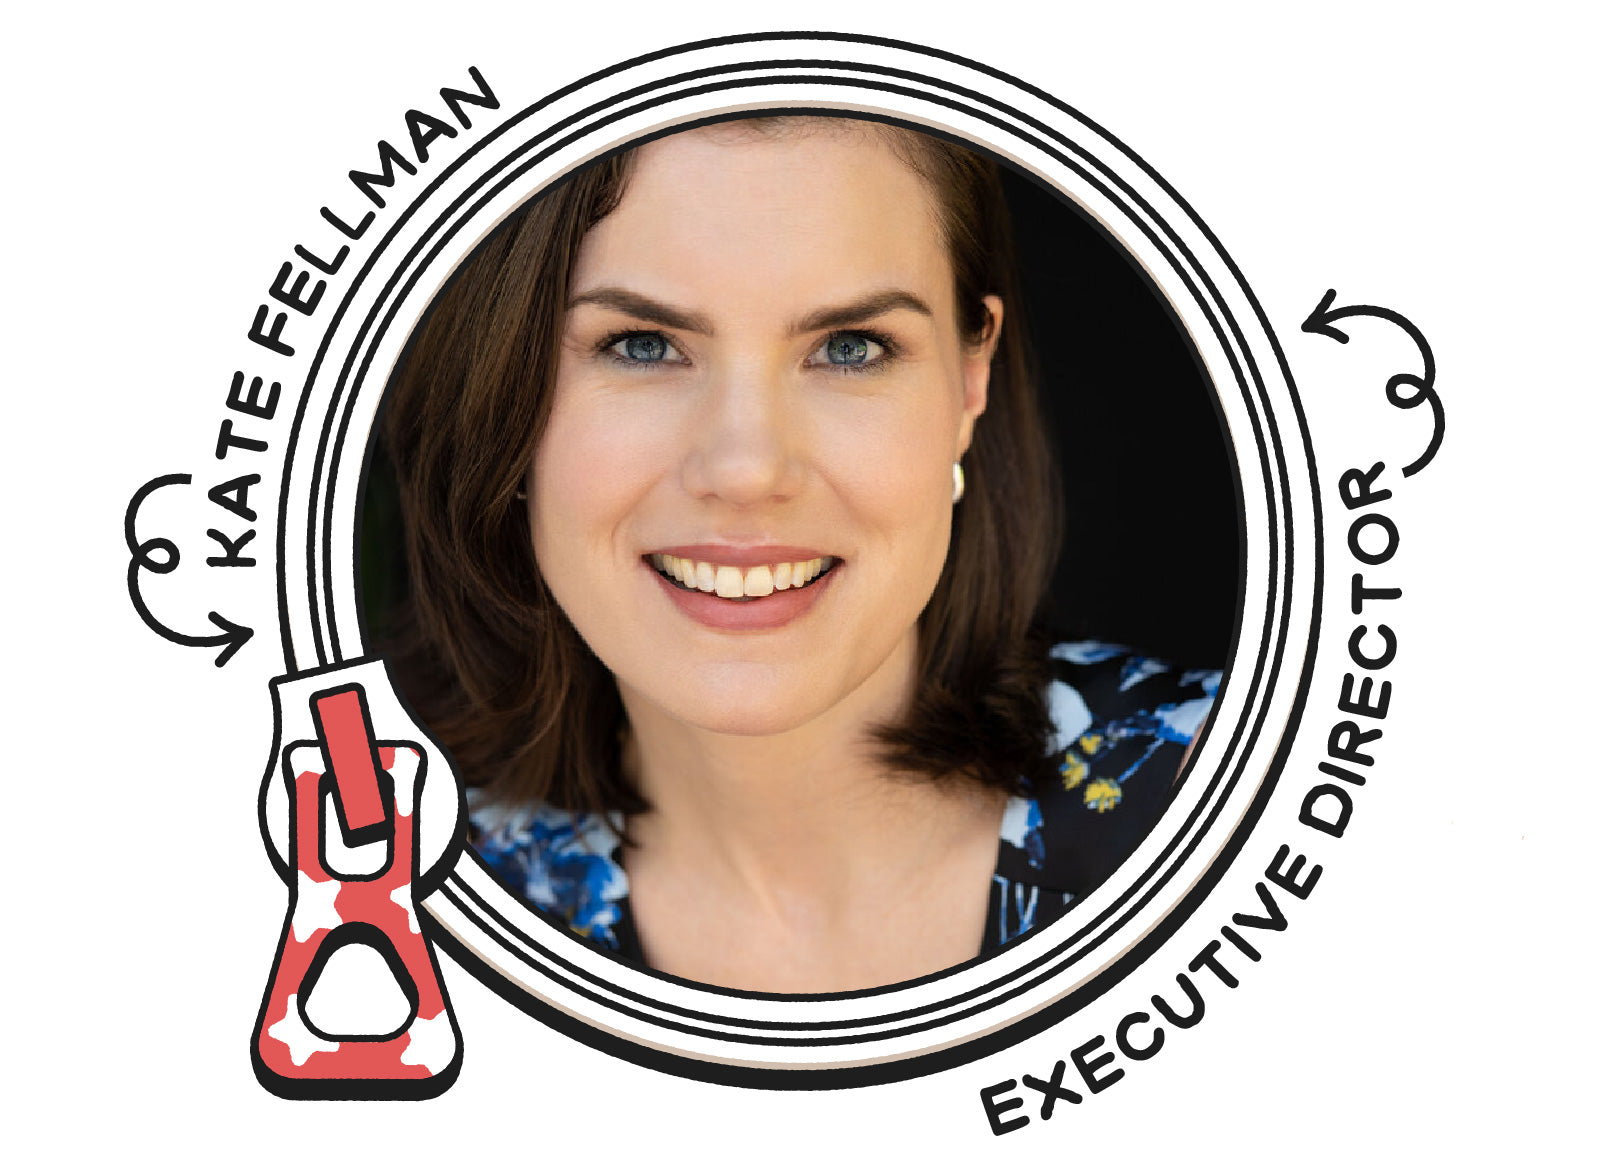 Headshot in a circular frame of Kate Fellman, Executive Director of You Can Vote